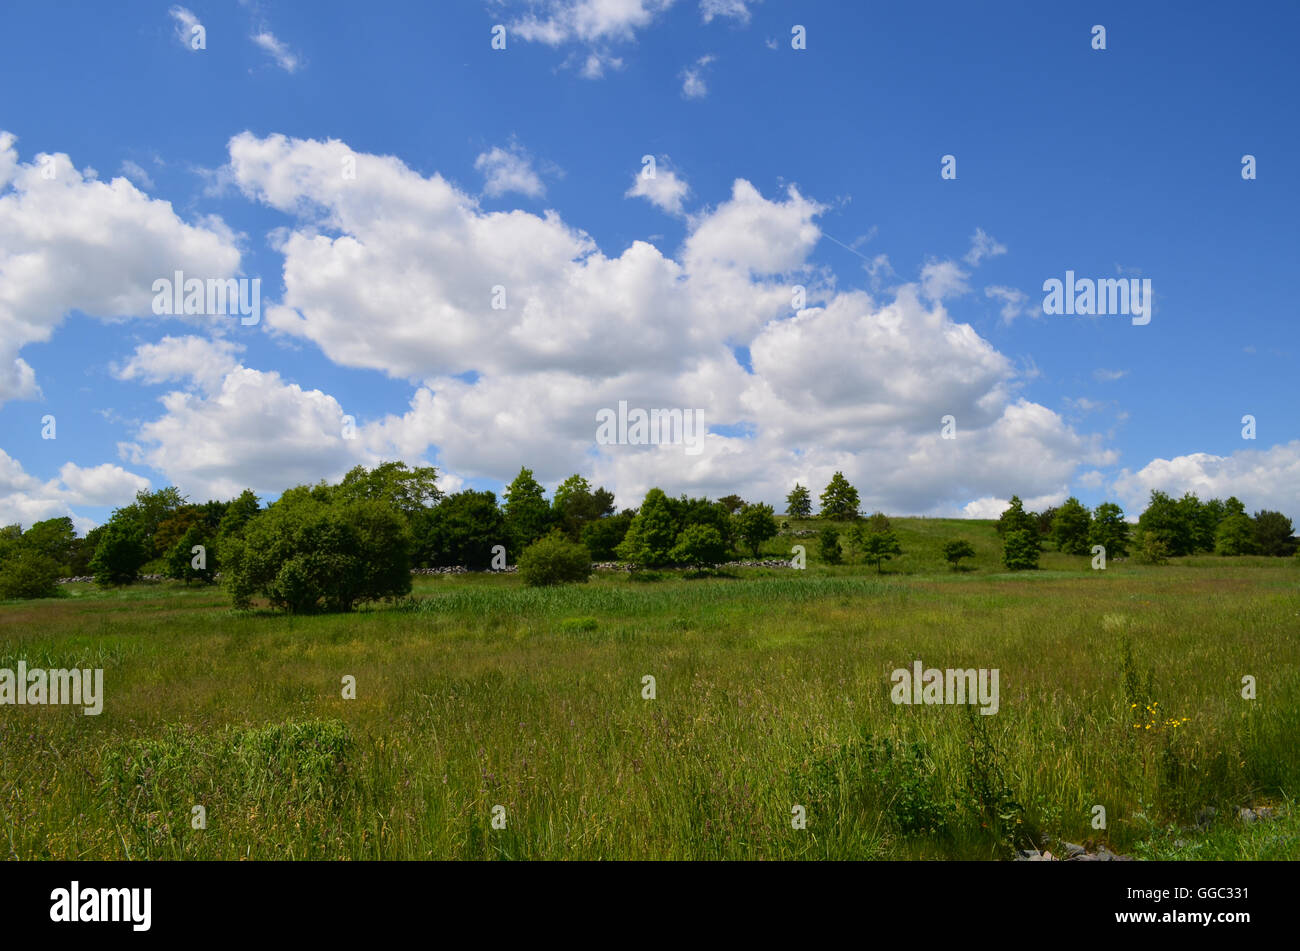 Gorgeous lush views of woods and trees on Spectacle Island in Massachusetts. - Stock Image